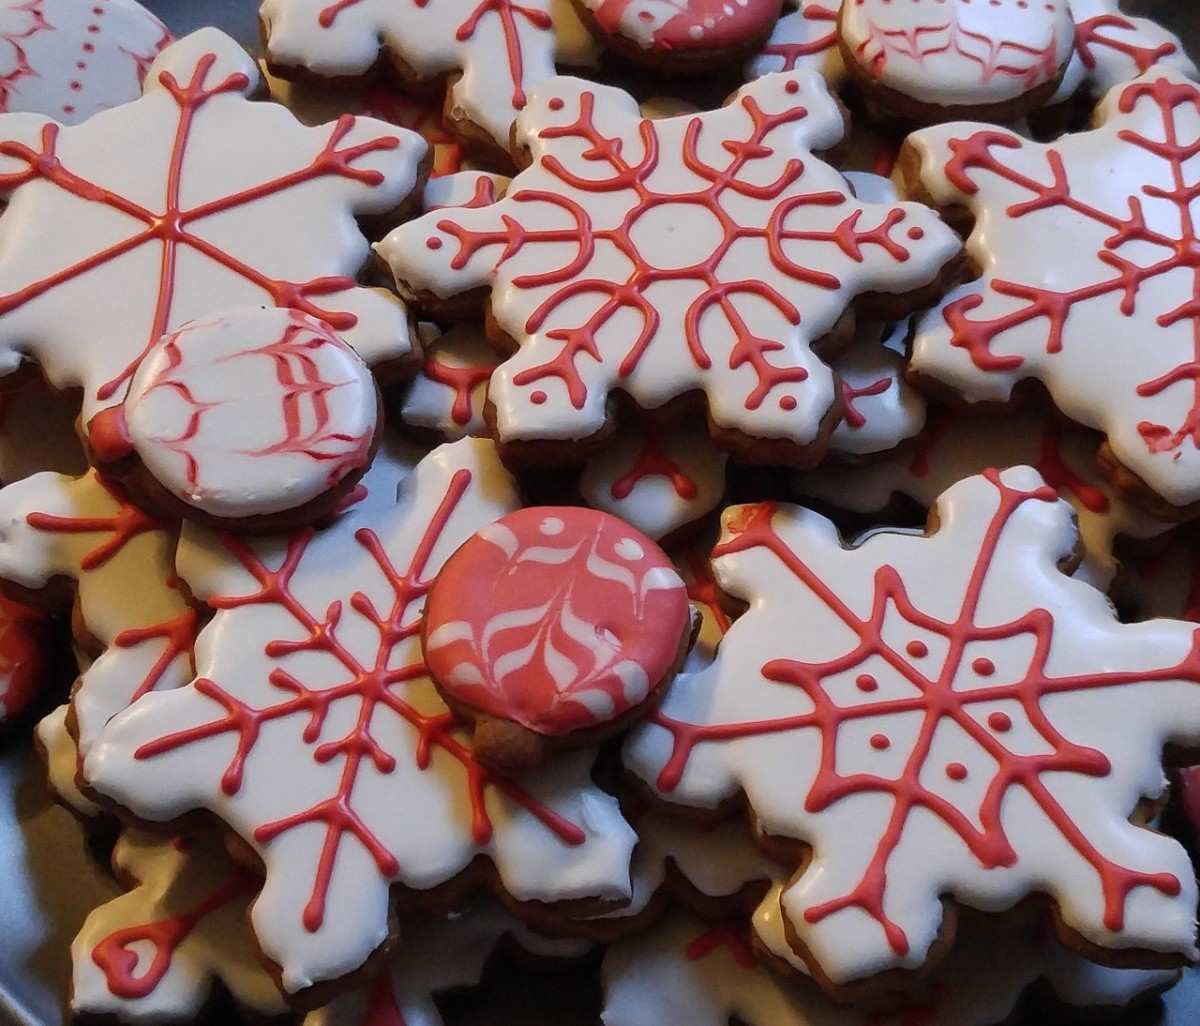 Exploring Sugar Cookies: Evolution of A Sweet Treat